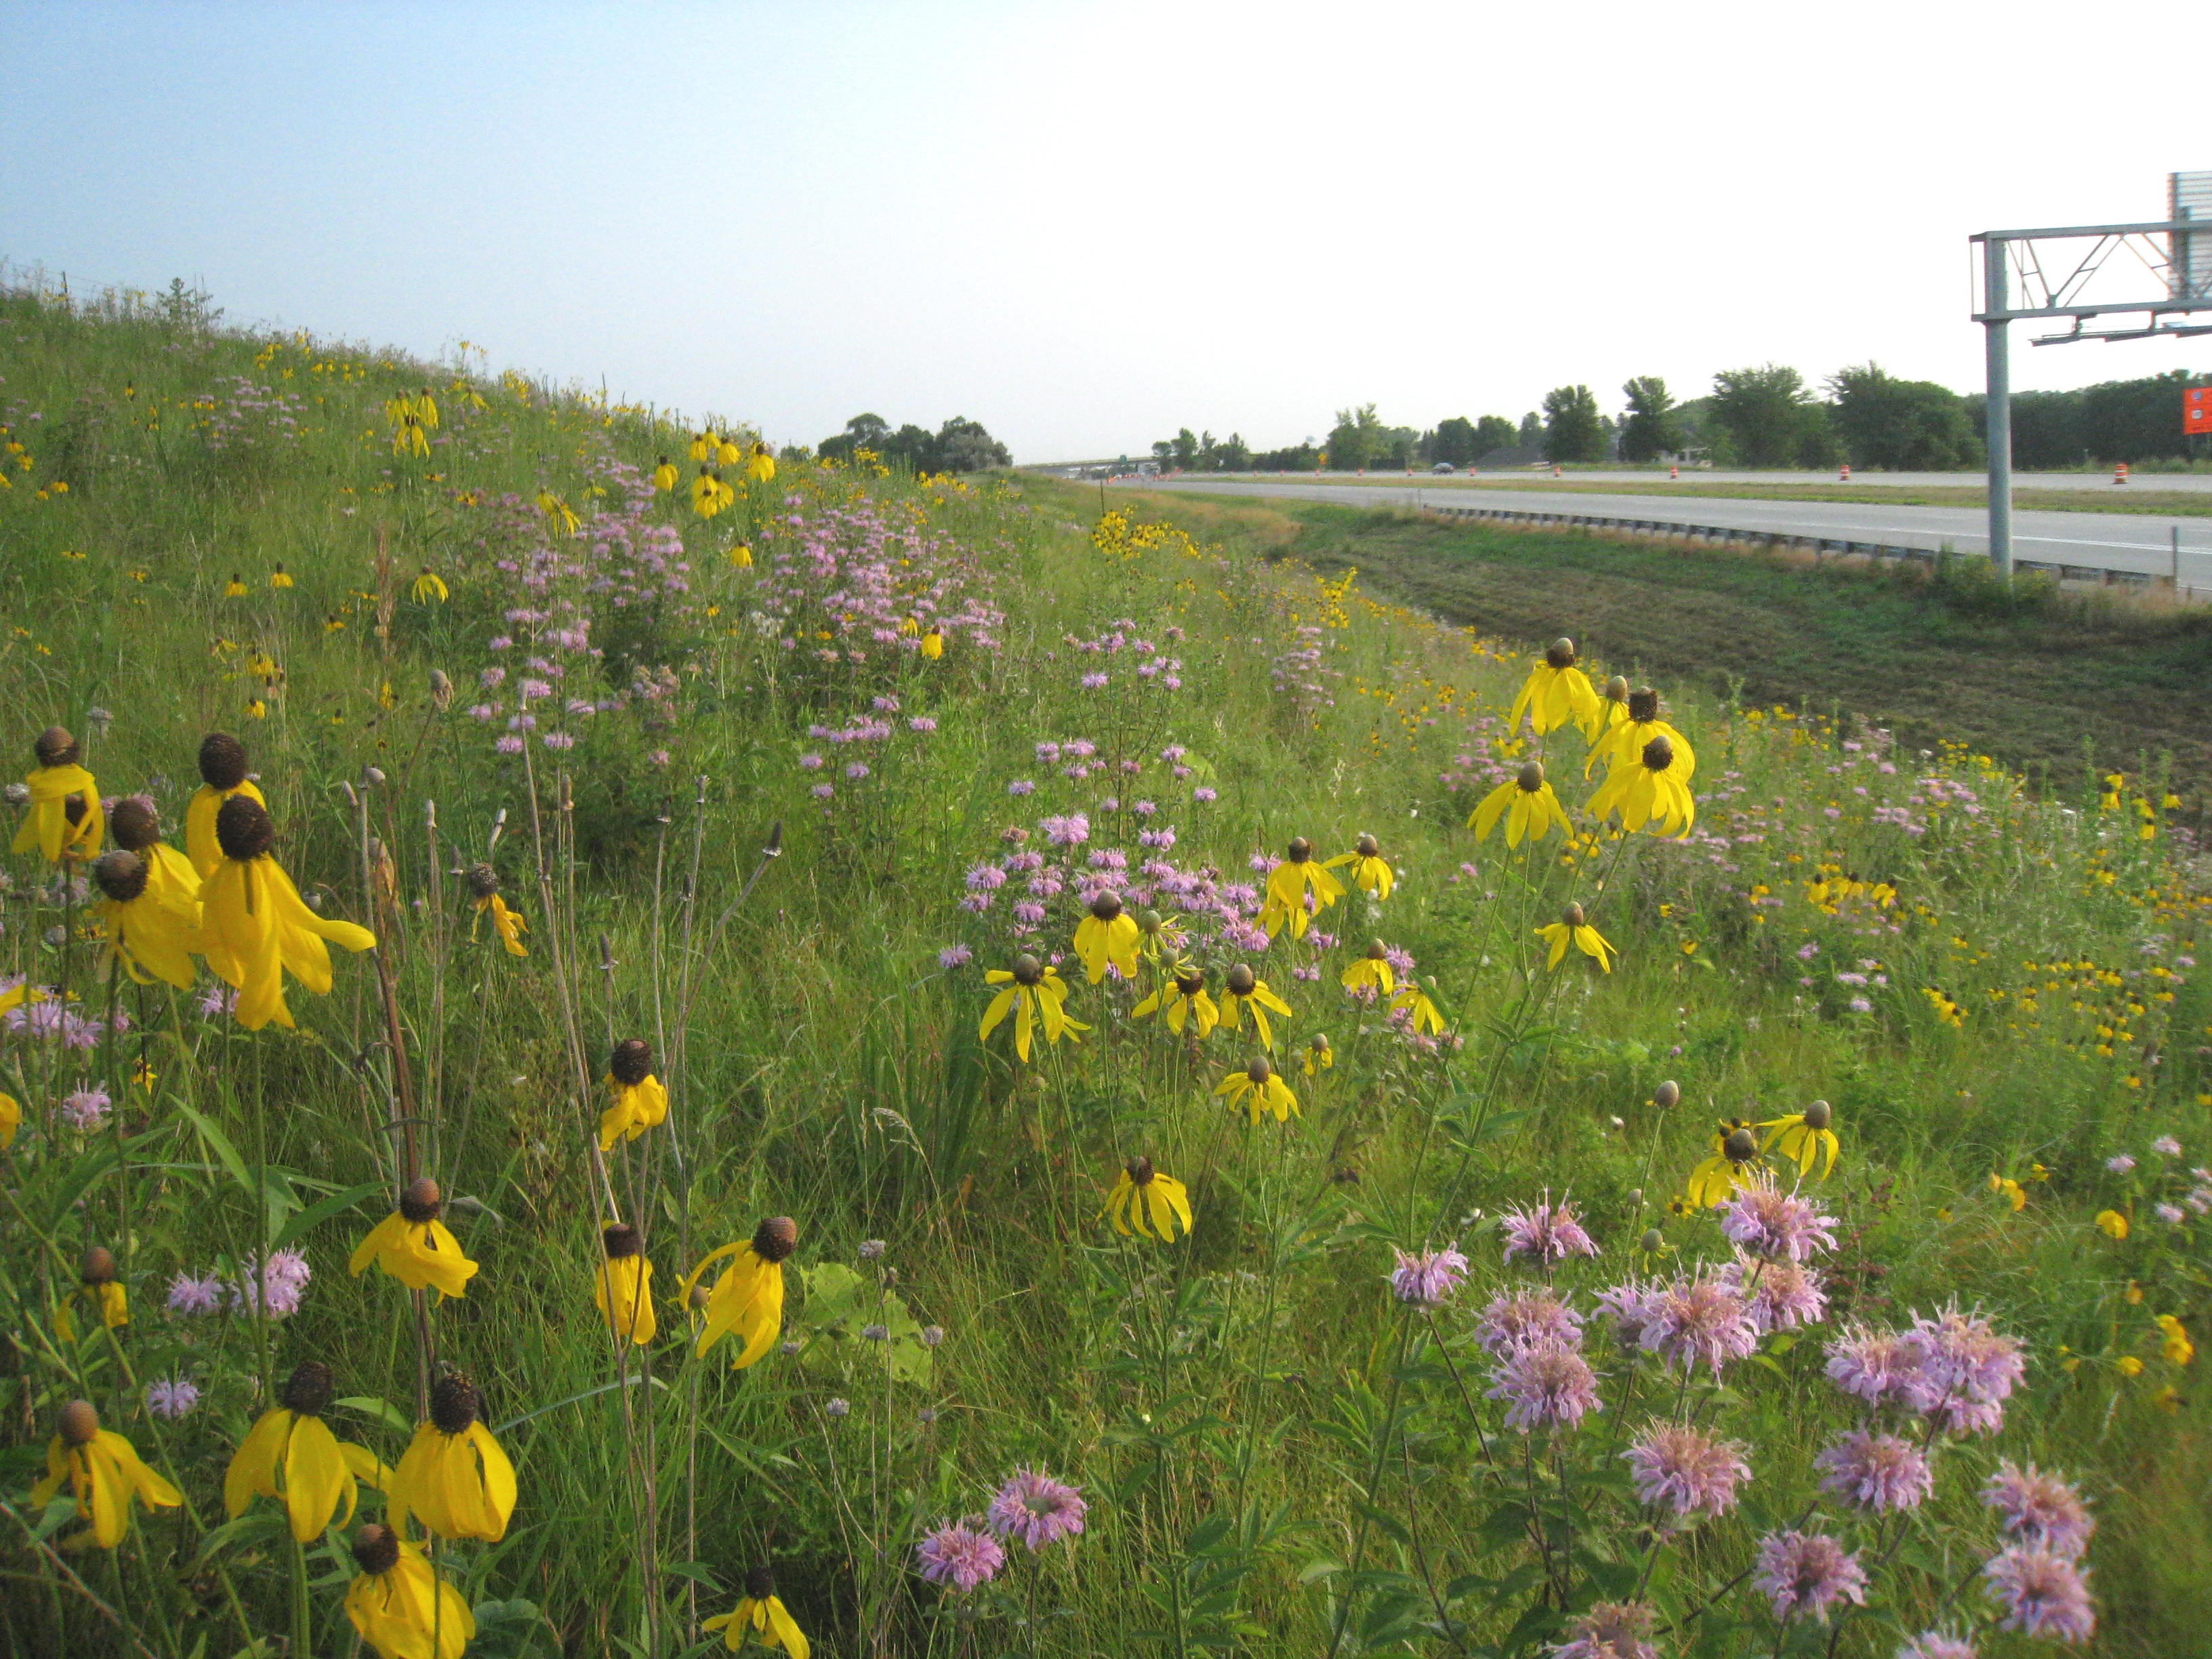 Wildflower growing in MnDOT right of way along side a highway